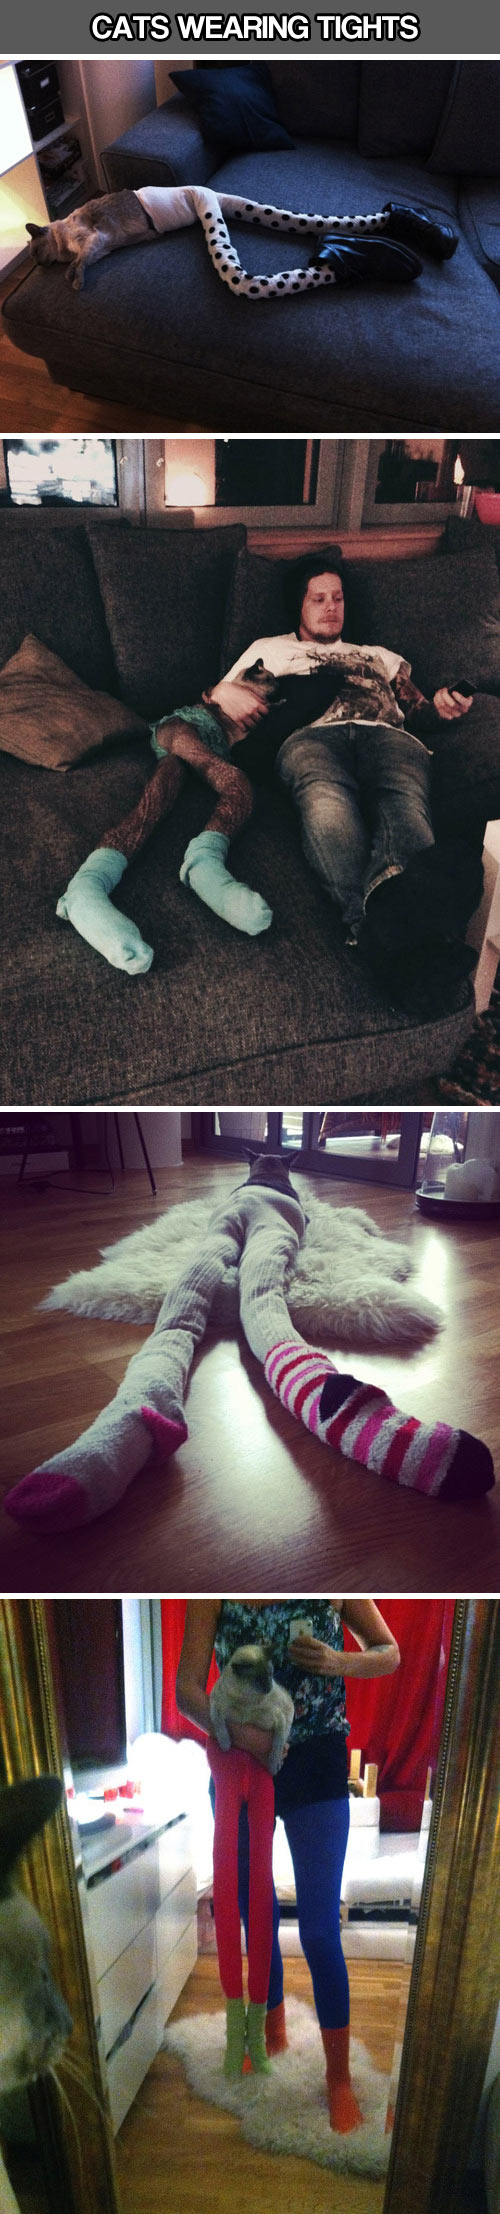 funny-cats-wearing-tights-shoes